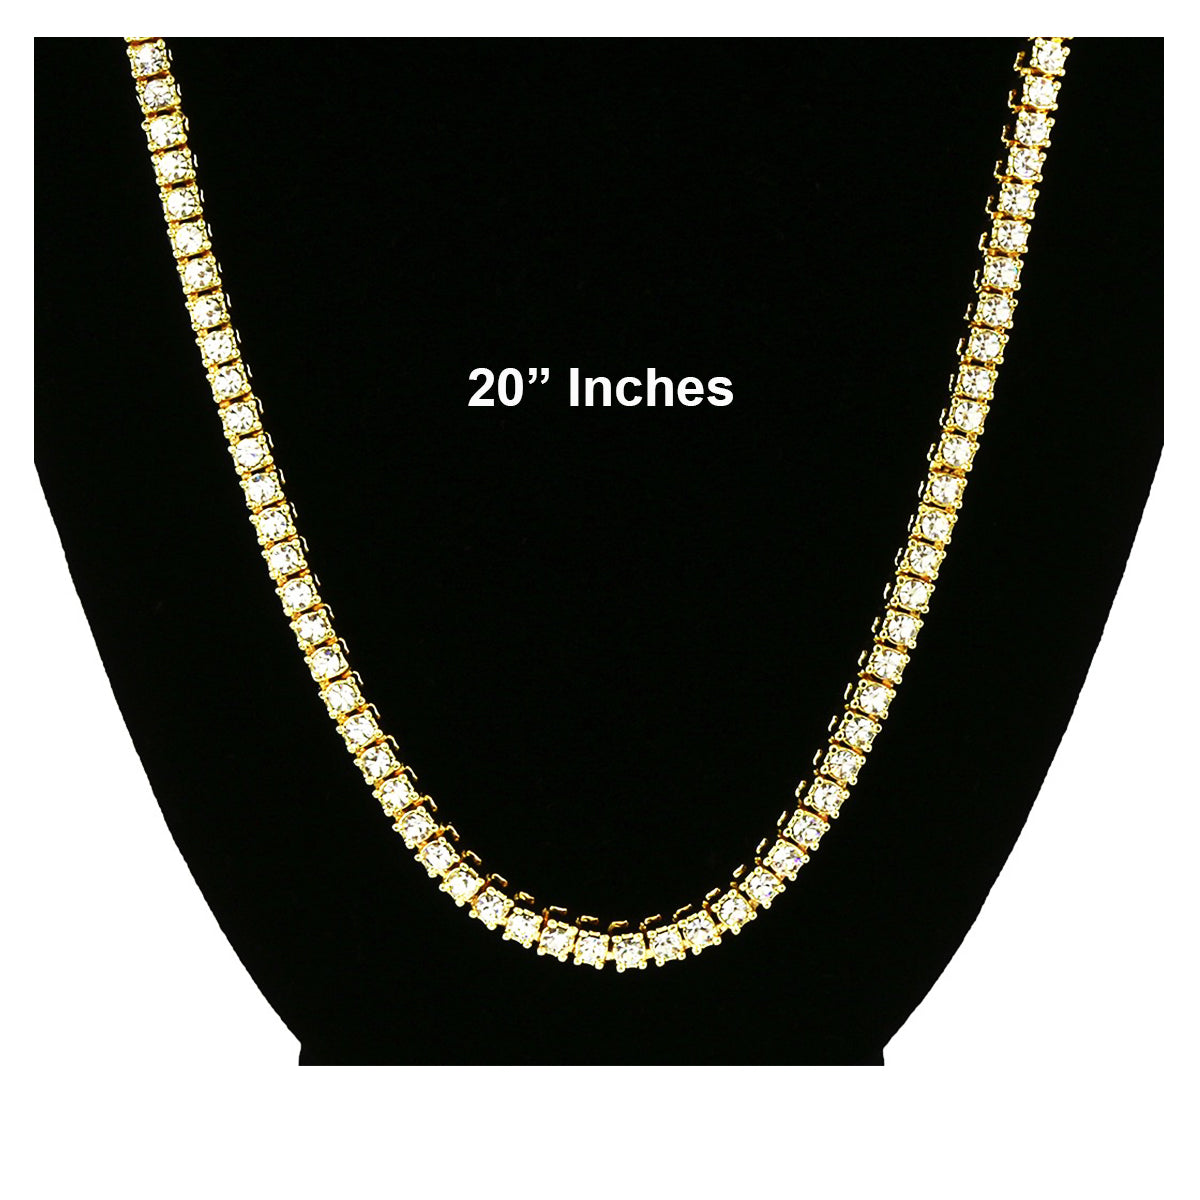 GOLD TENNIS CHAIN 20""